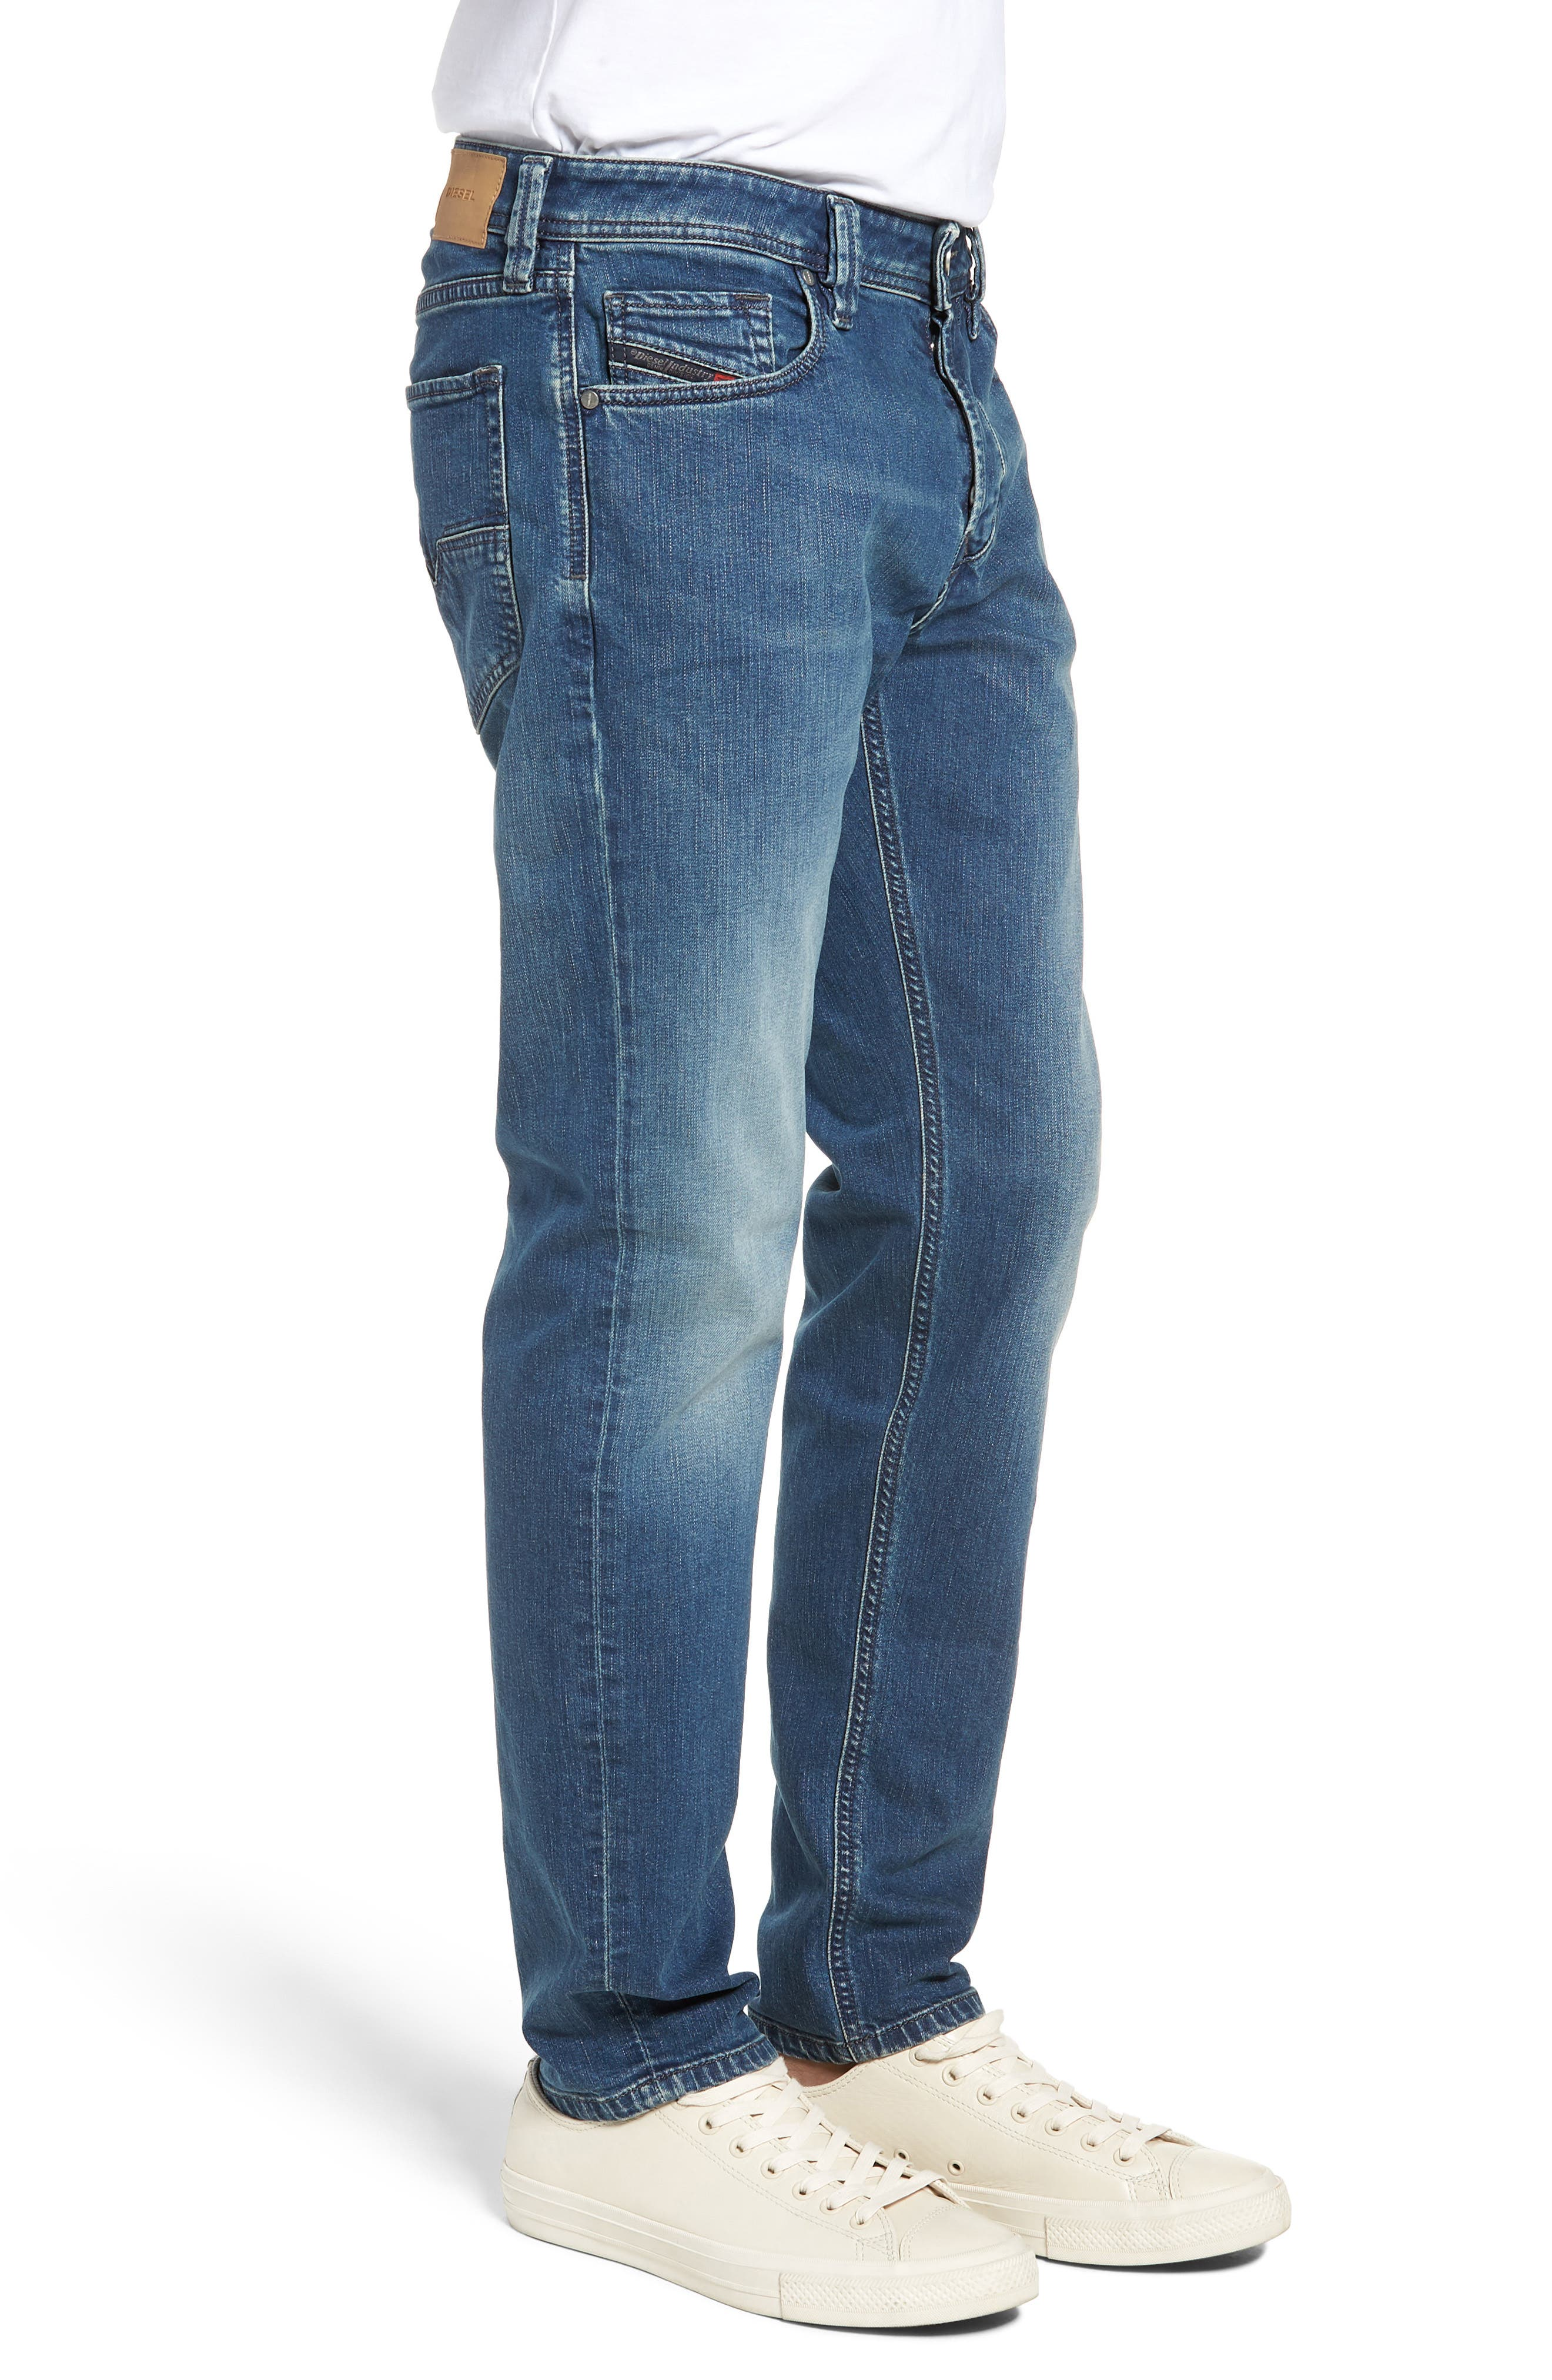 Larkee Relaxed Fit Jeans,                             Alternate thumbnail 3, color,                             400